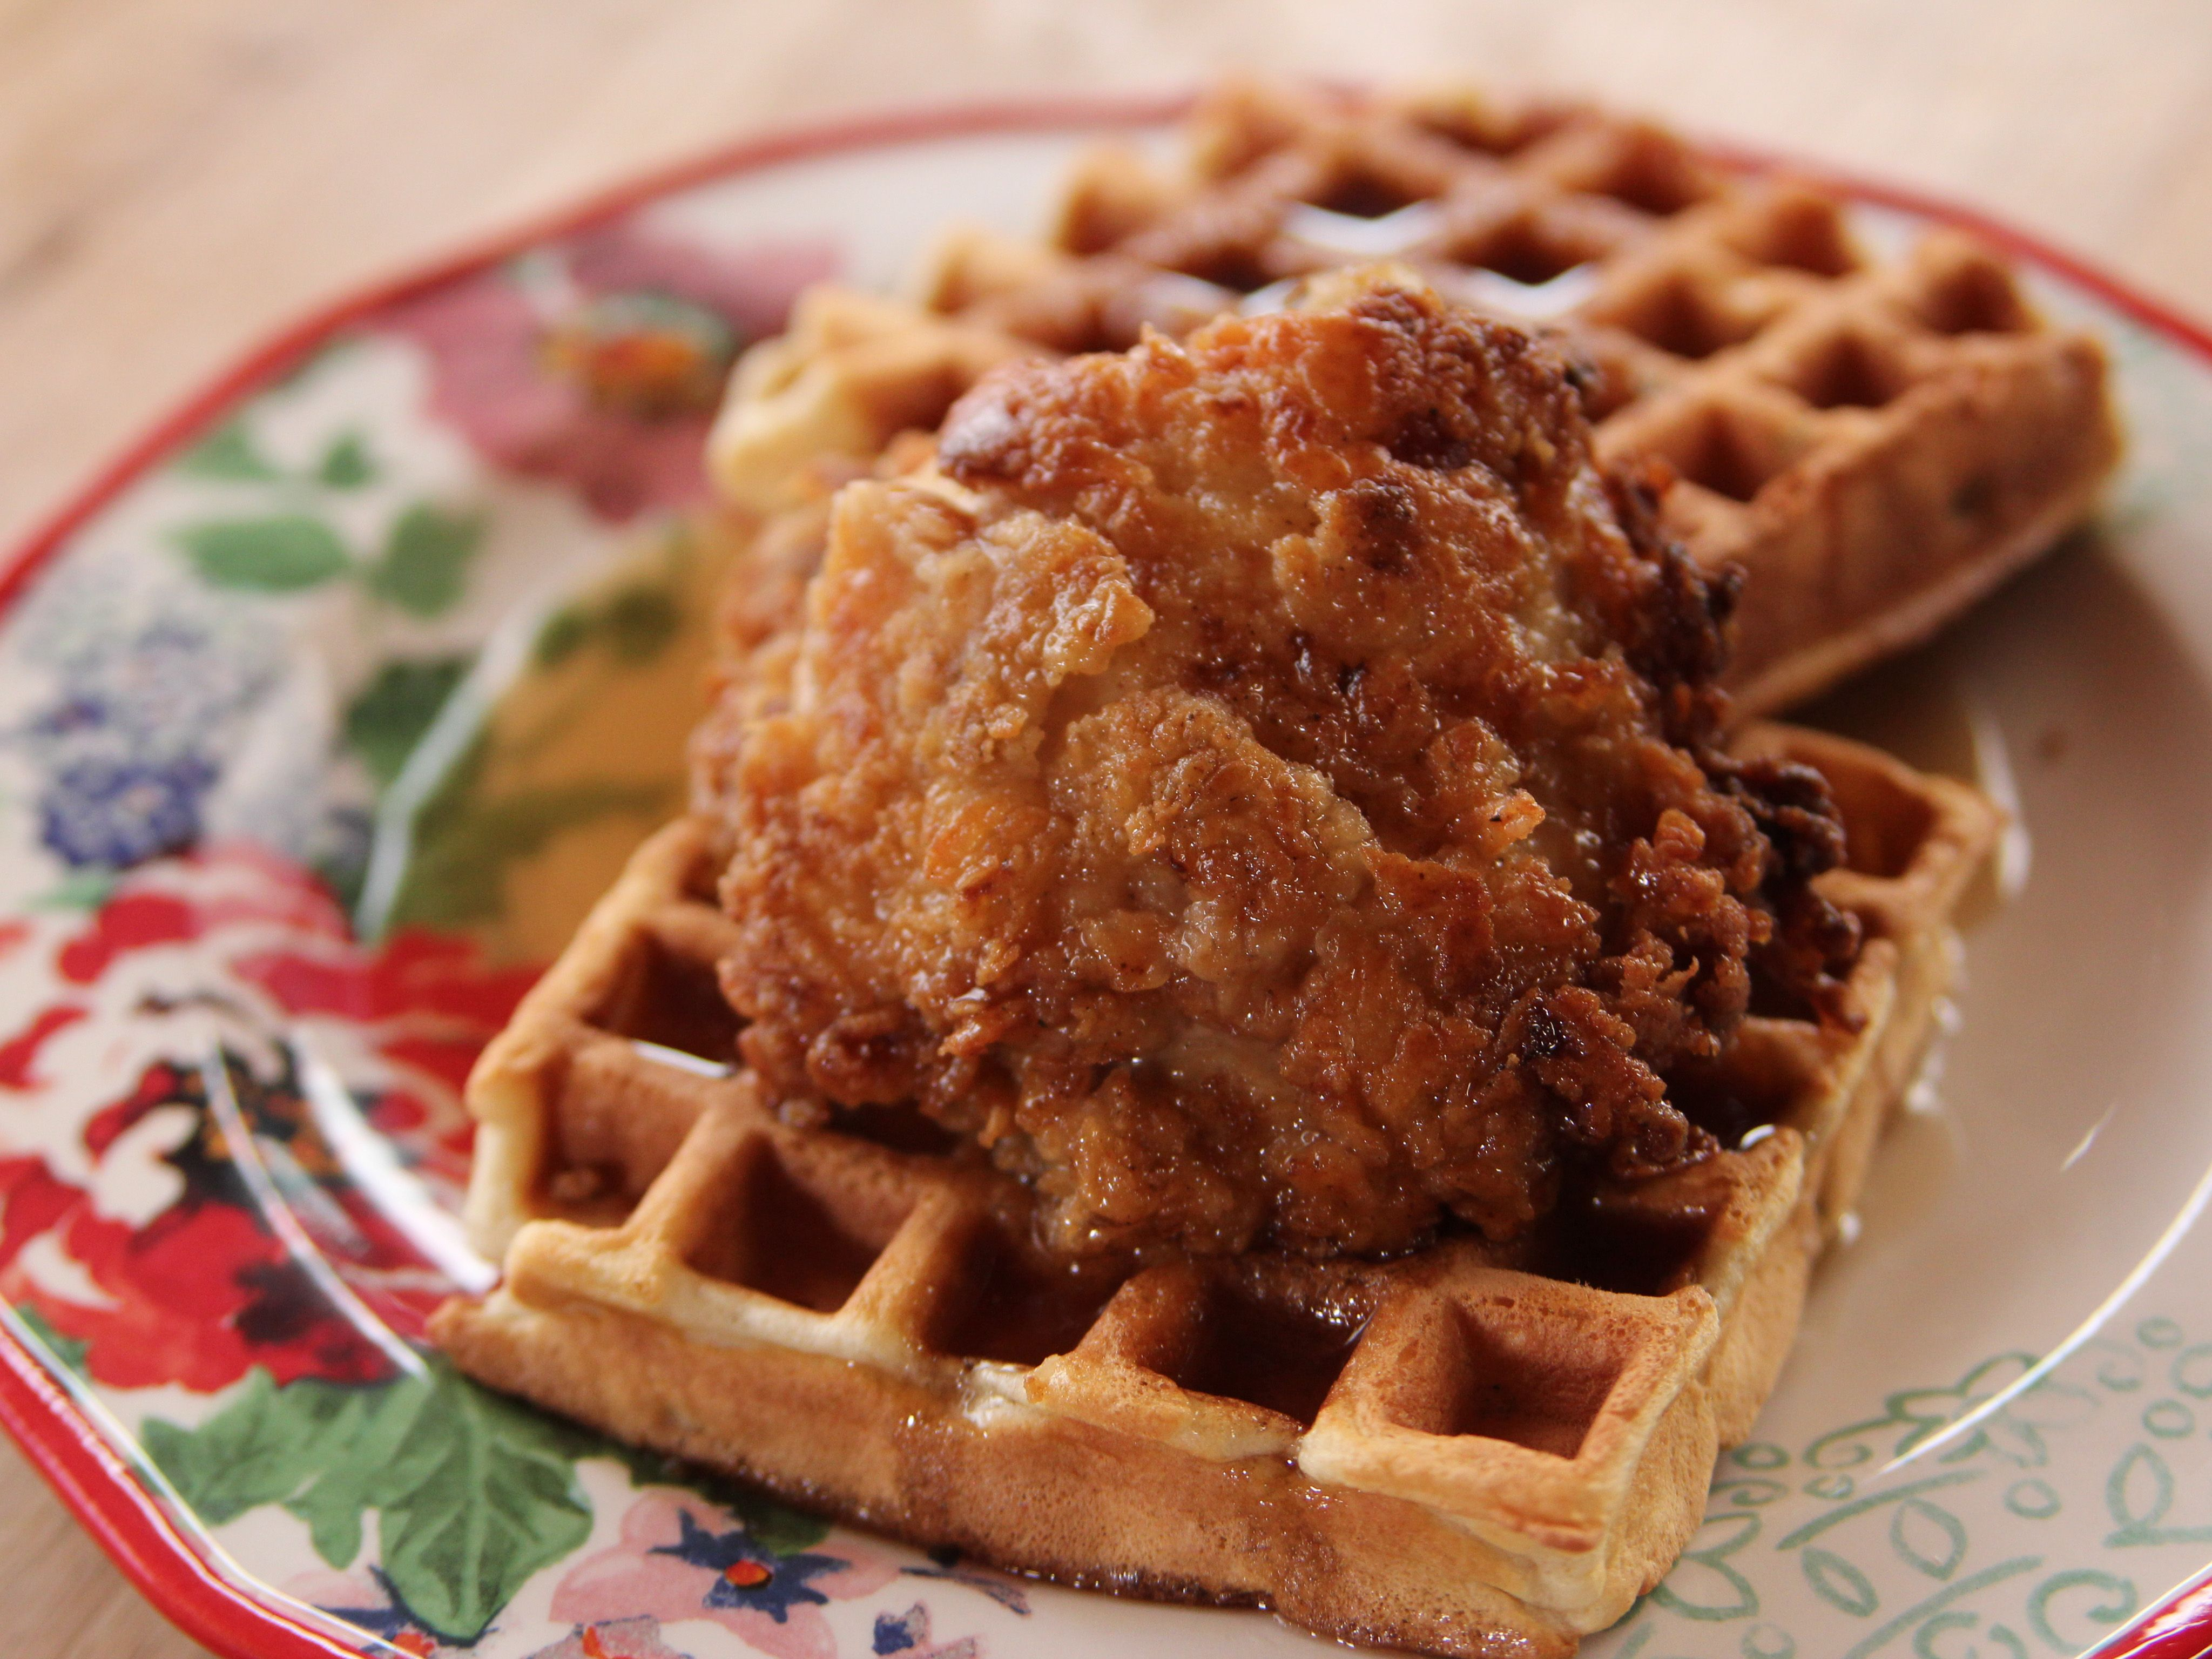 Chicken and Waffles | Recipe | Waffle recipes and Ree drummond